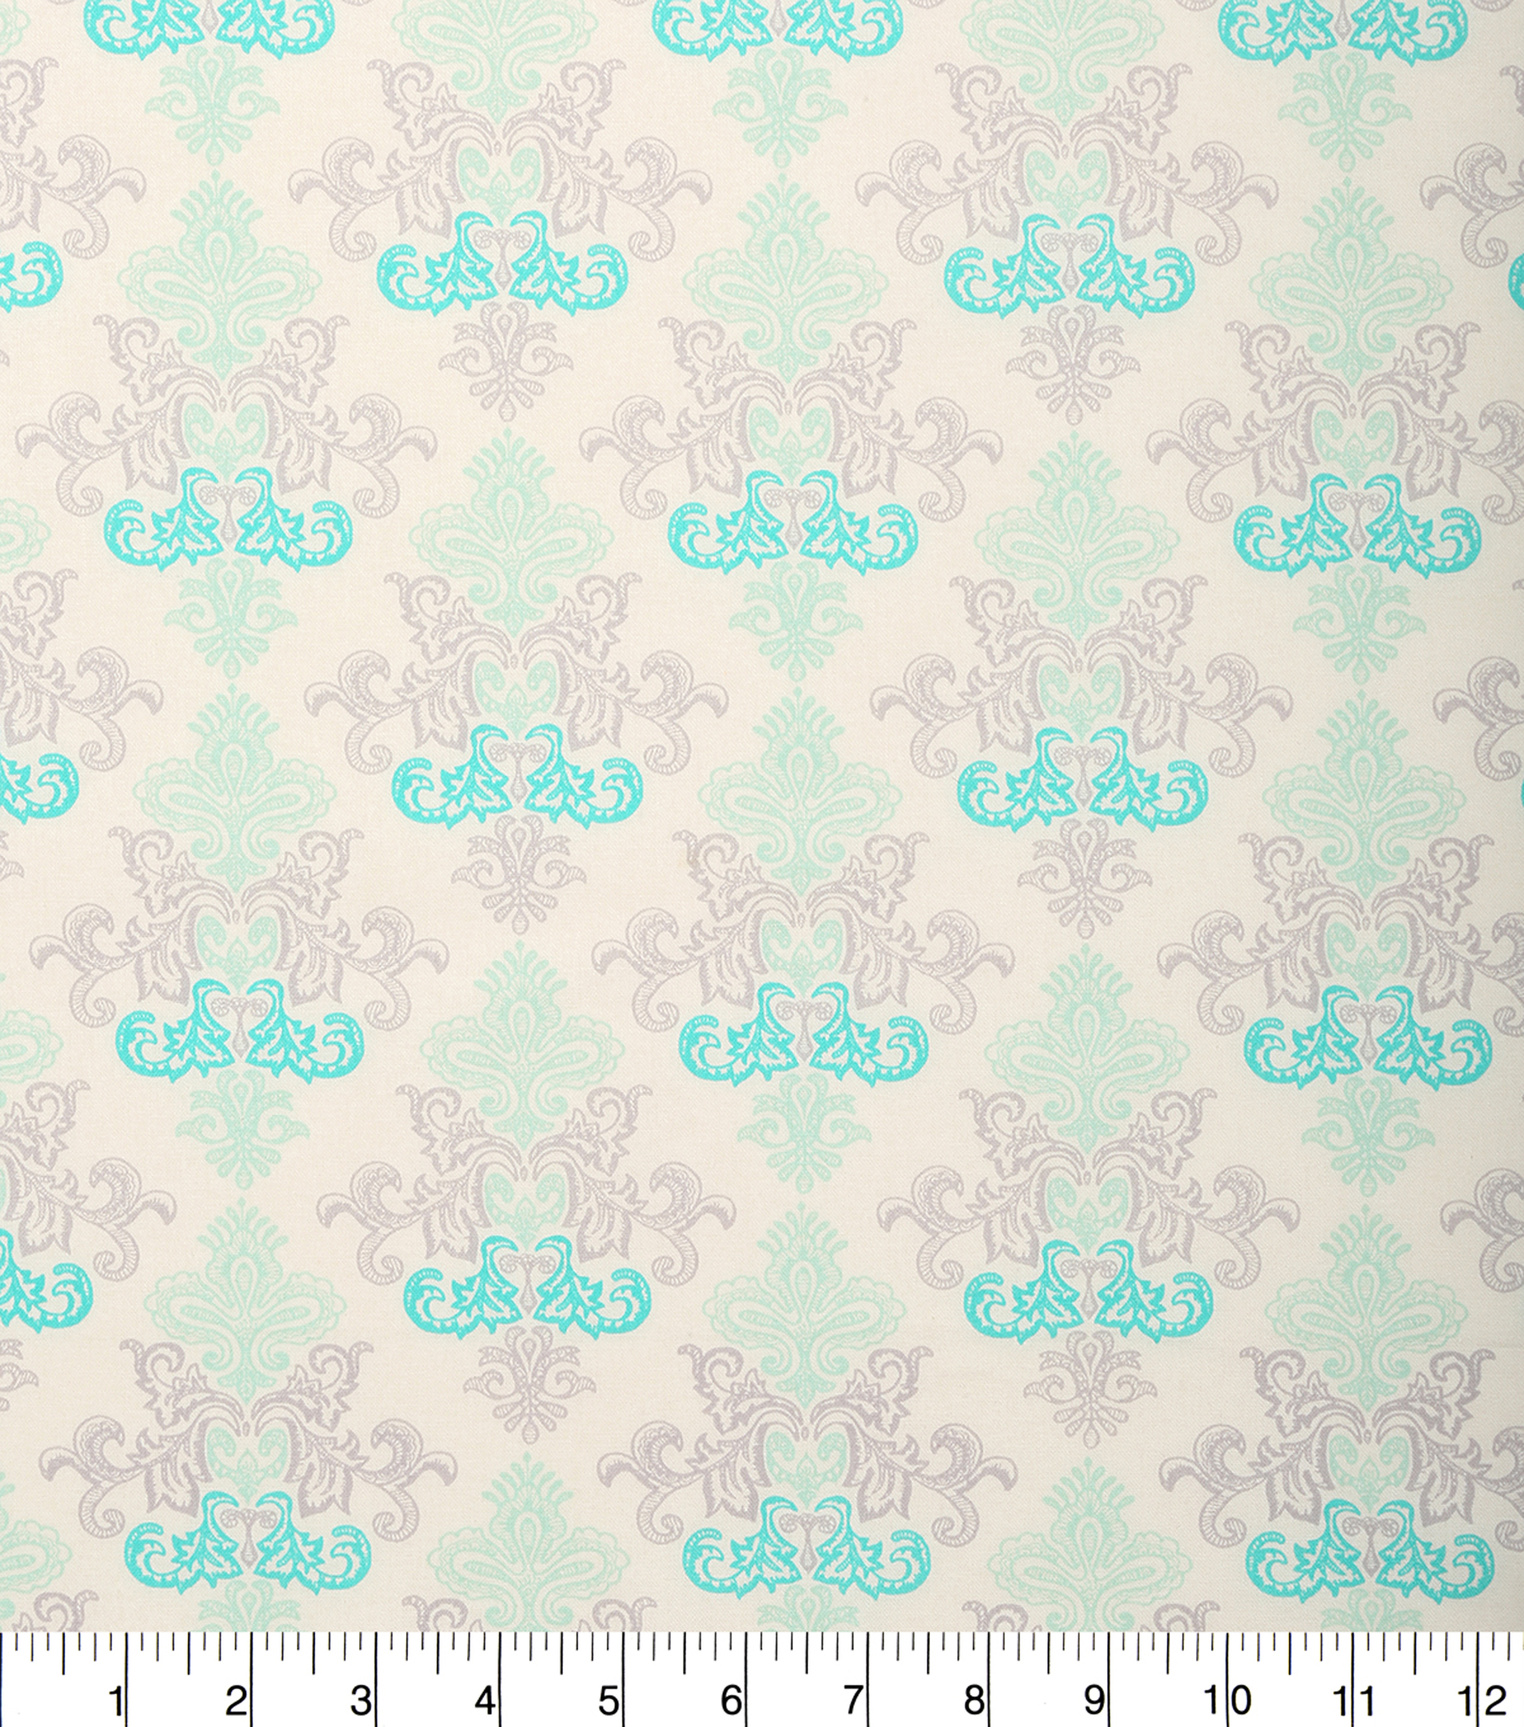 Keepsake Calico Cotton Fabric -Damask Blue